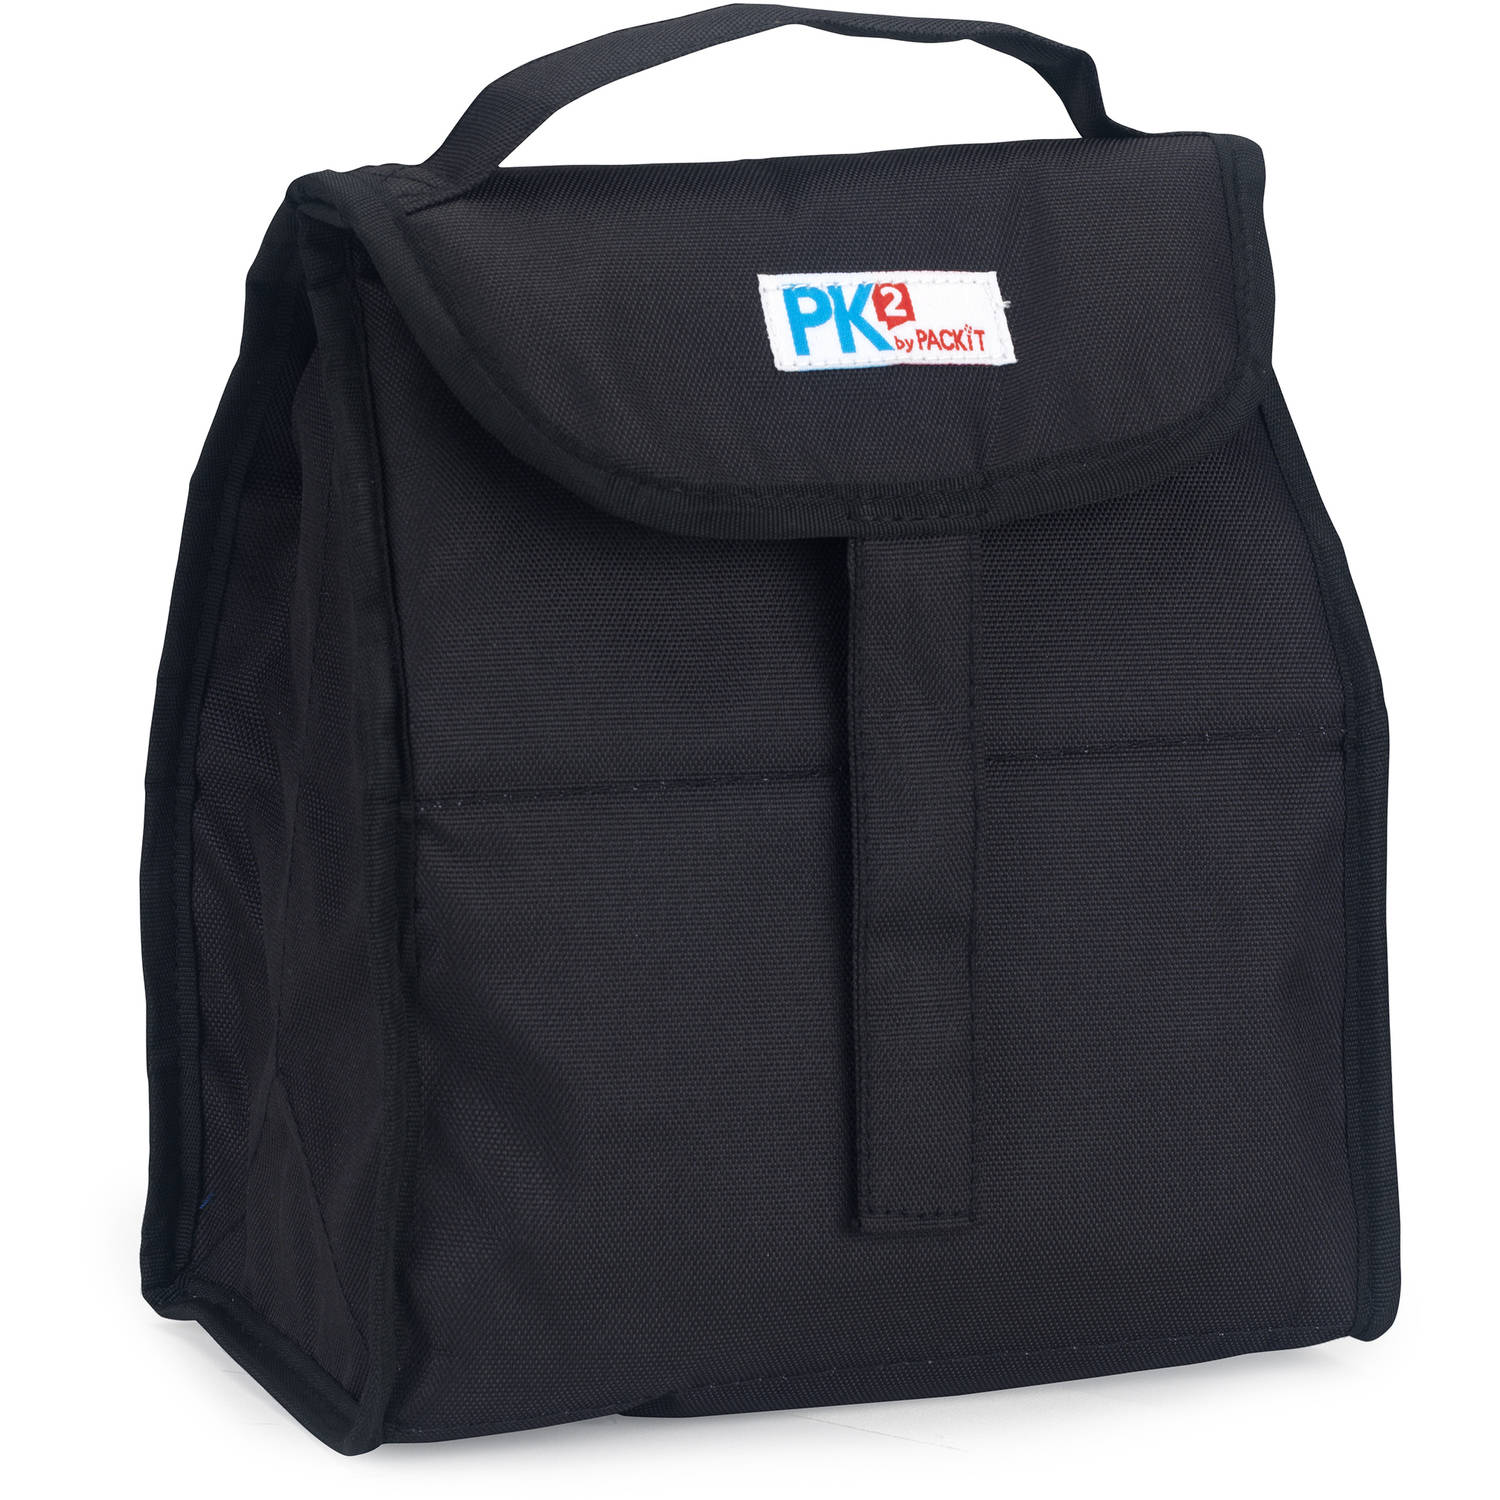 PackIt PK2 Lunch Sack, Black